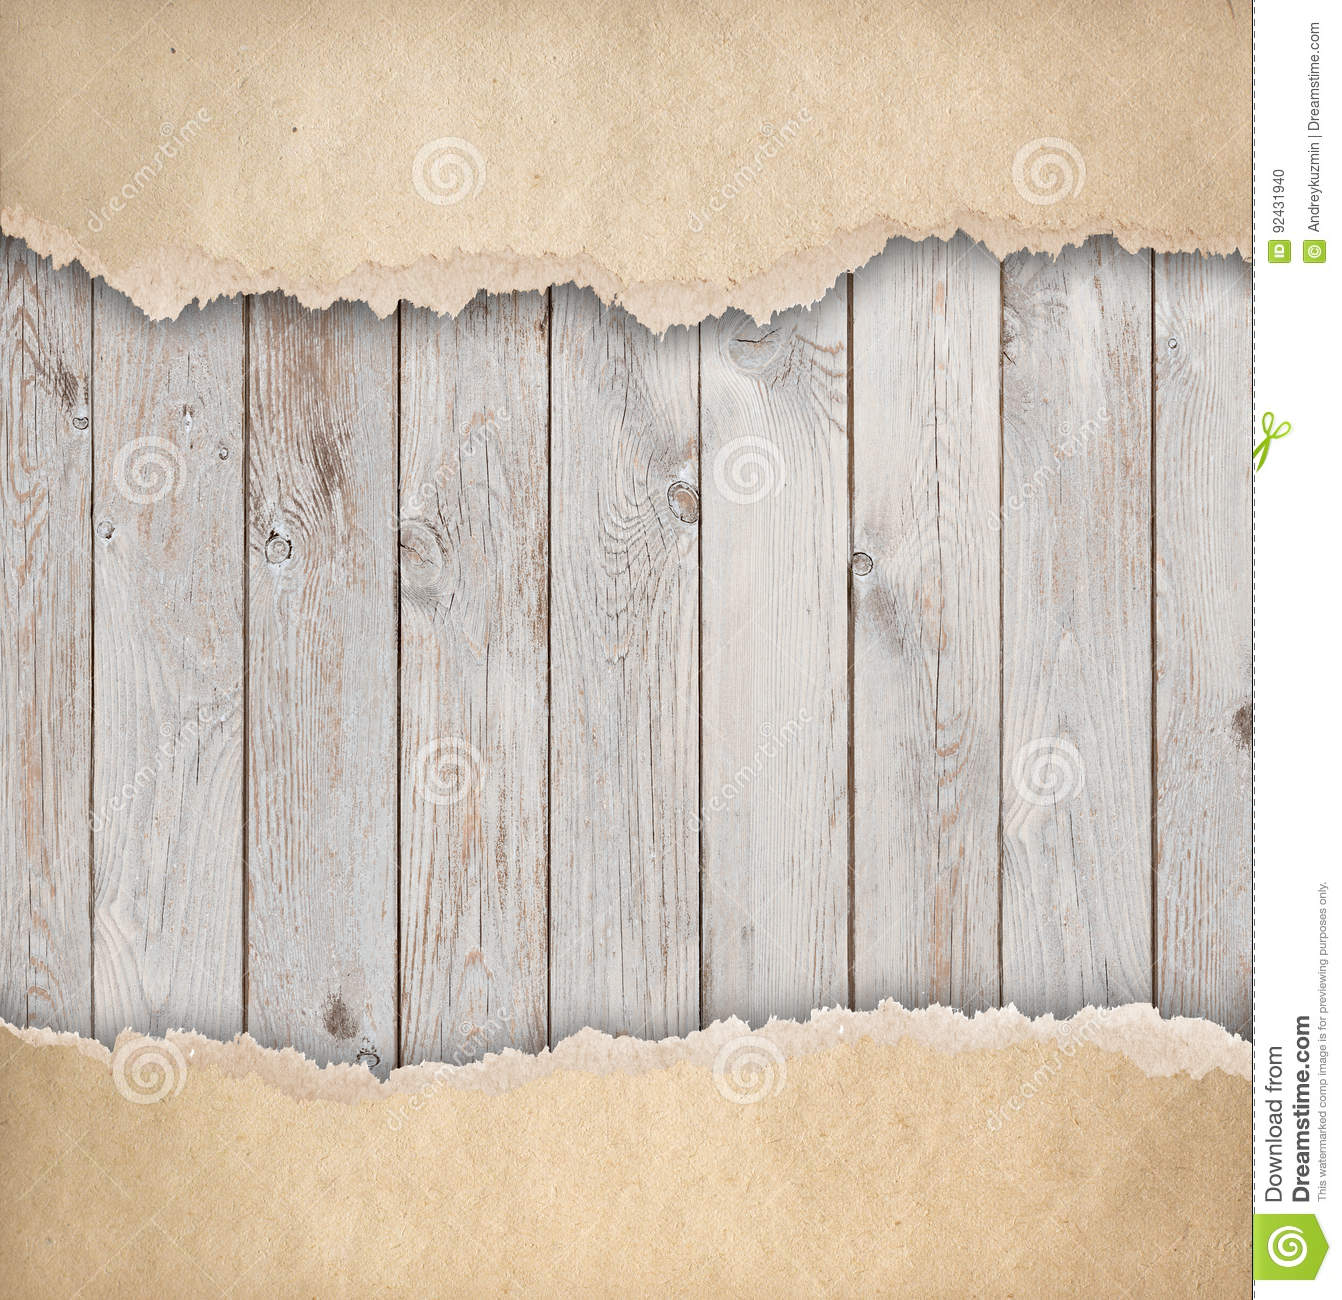 Wood Background With Old Torn Paper 3d Illustration Stock